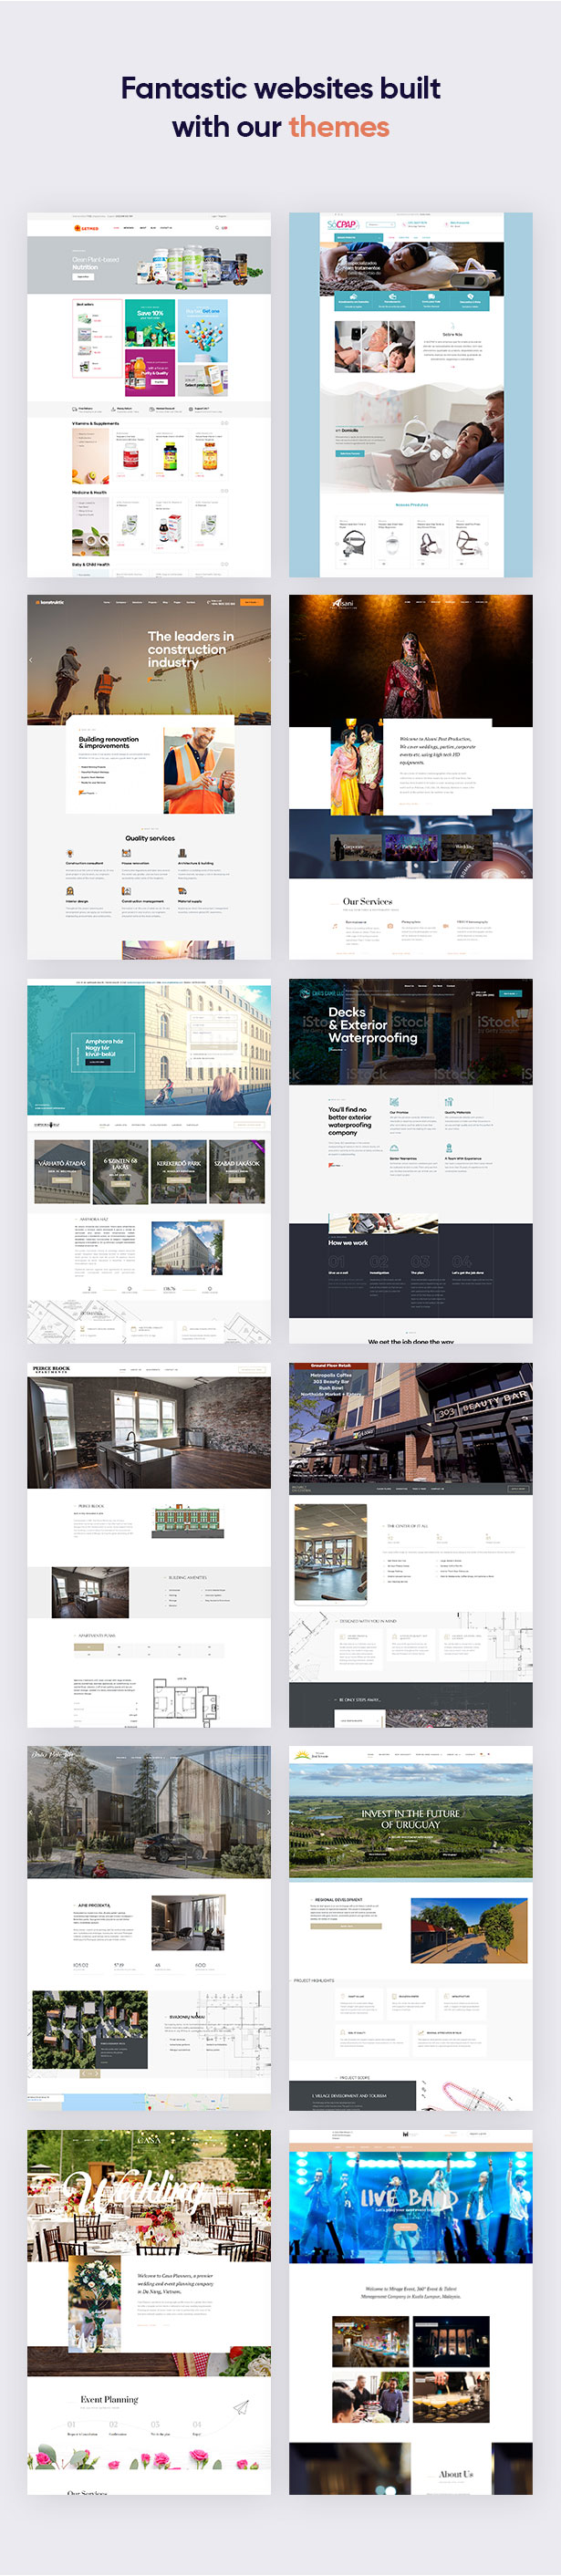 powerful & fantastic websites built with our themes